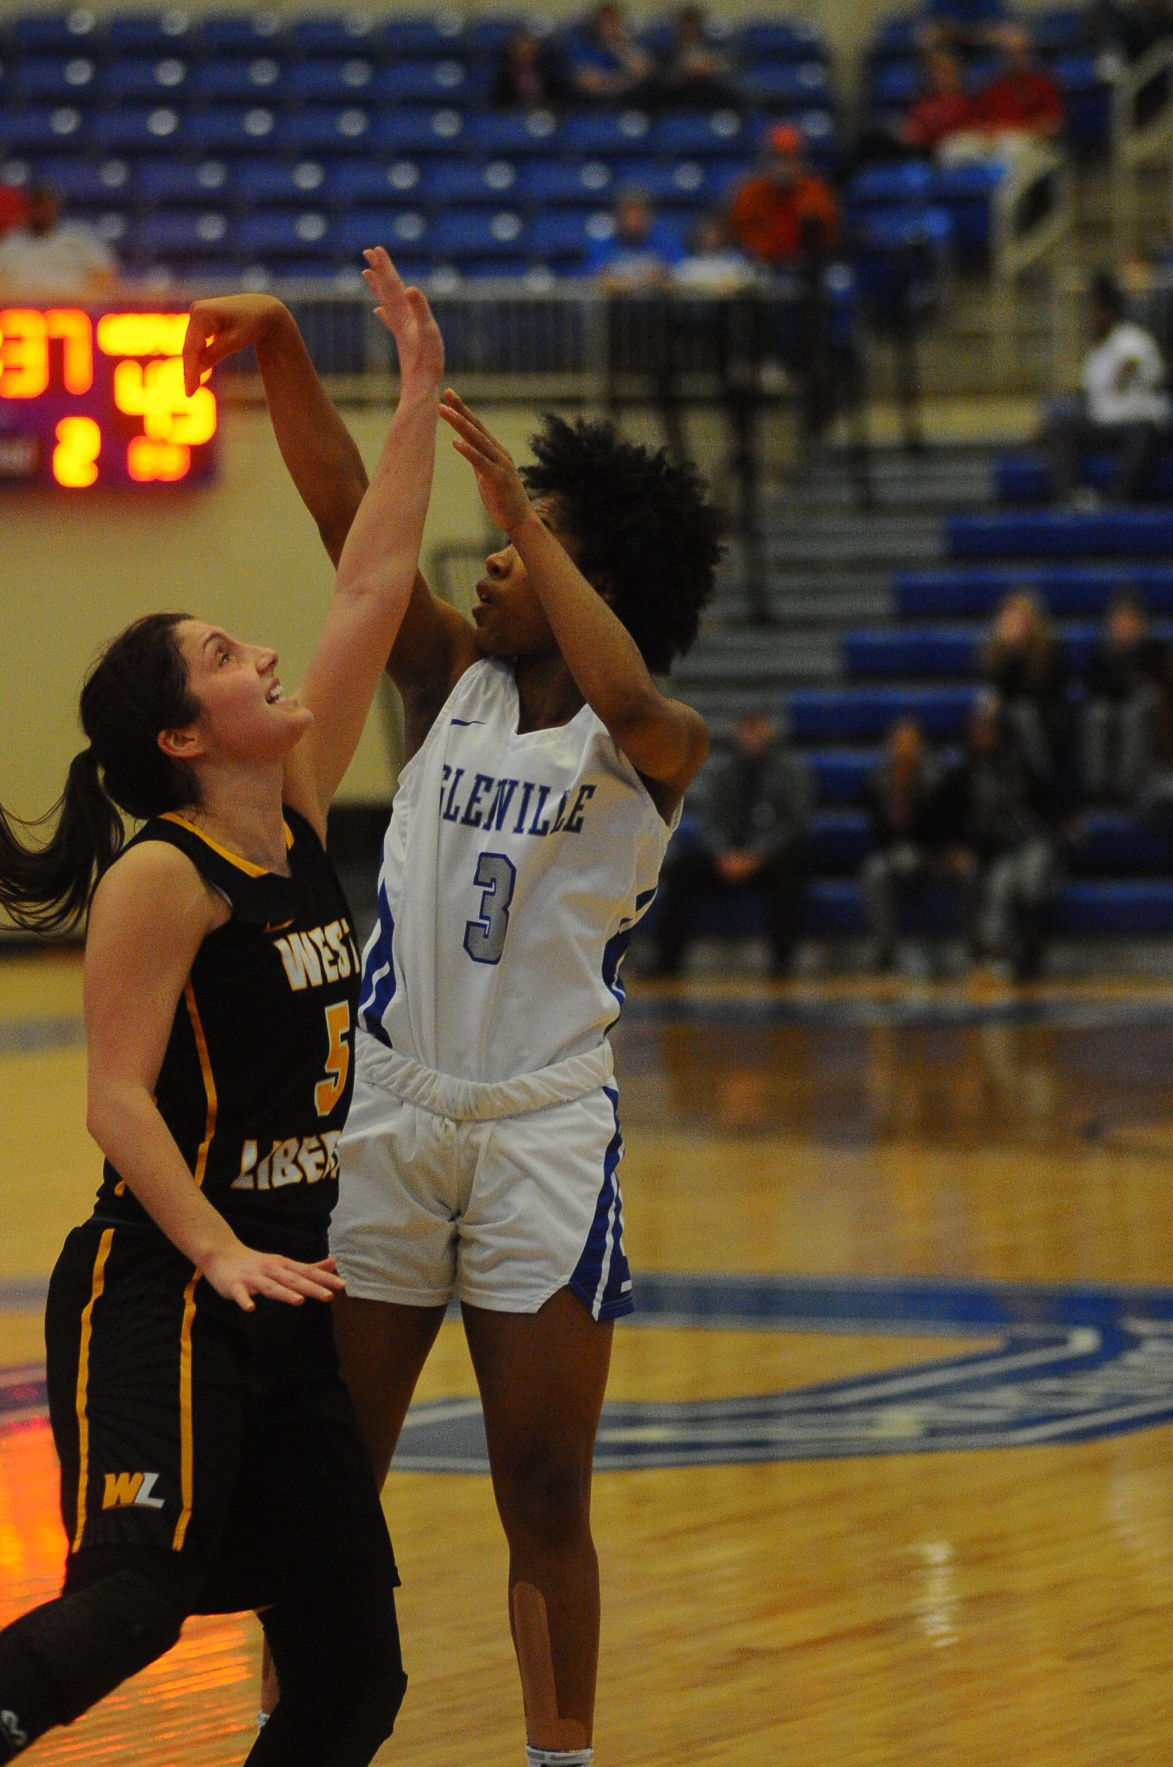 GAS Ty Armstrong nails a deep 3 with WLU Audrey Tingle in her face